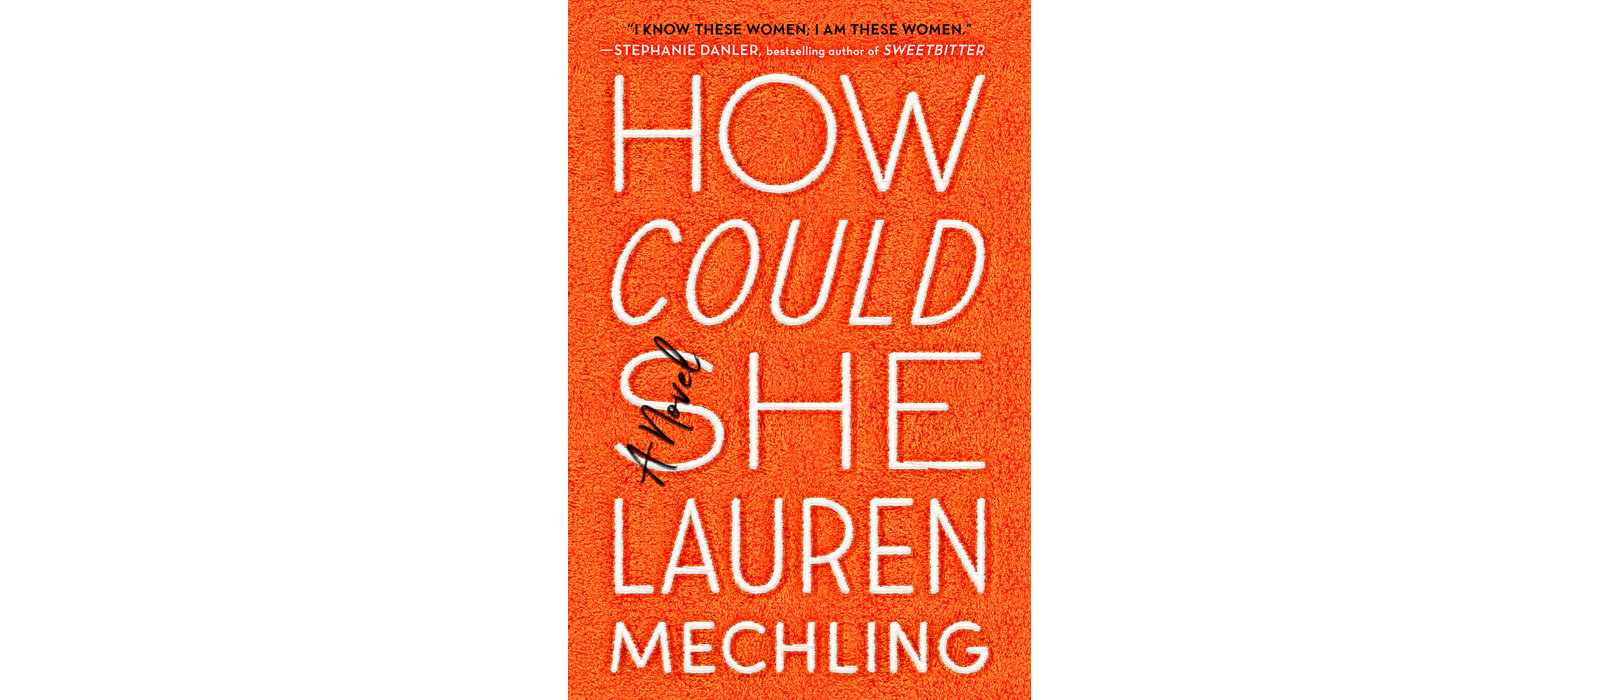 Book cover of How Could She, by Lauren Mechling